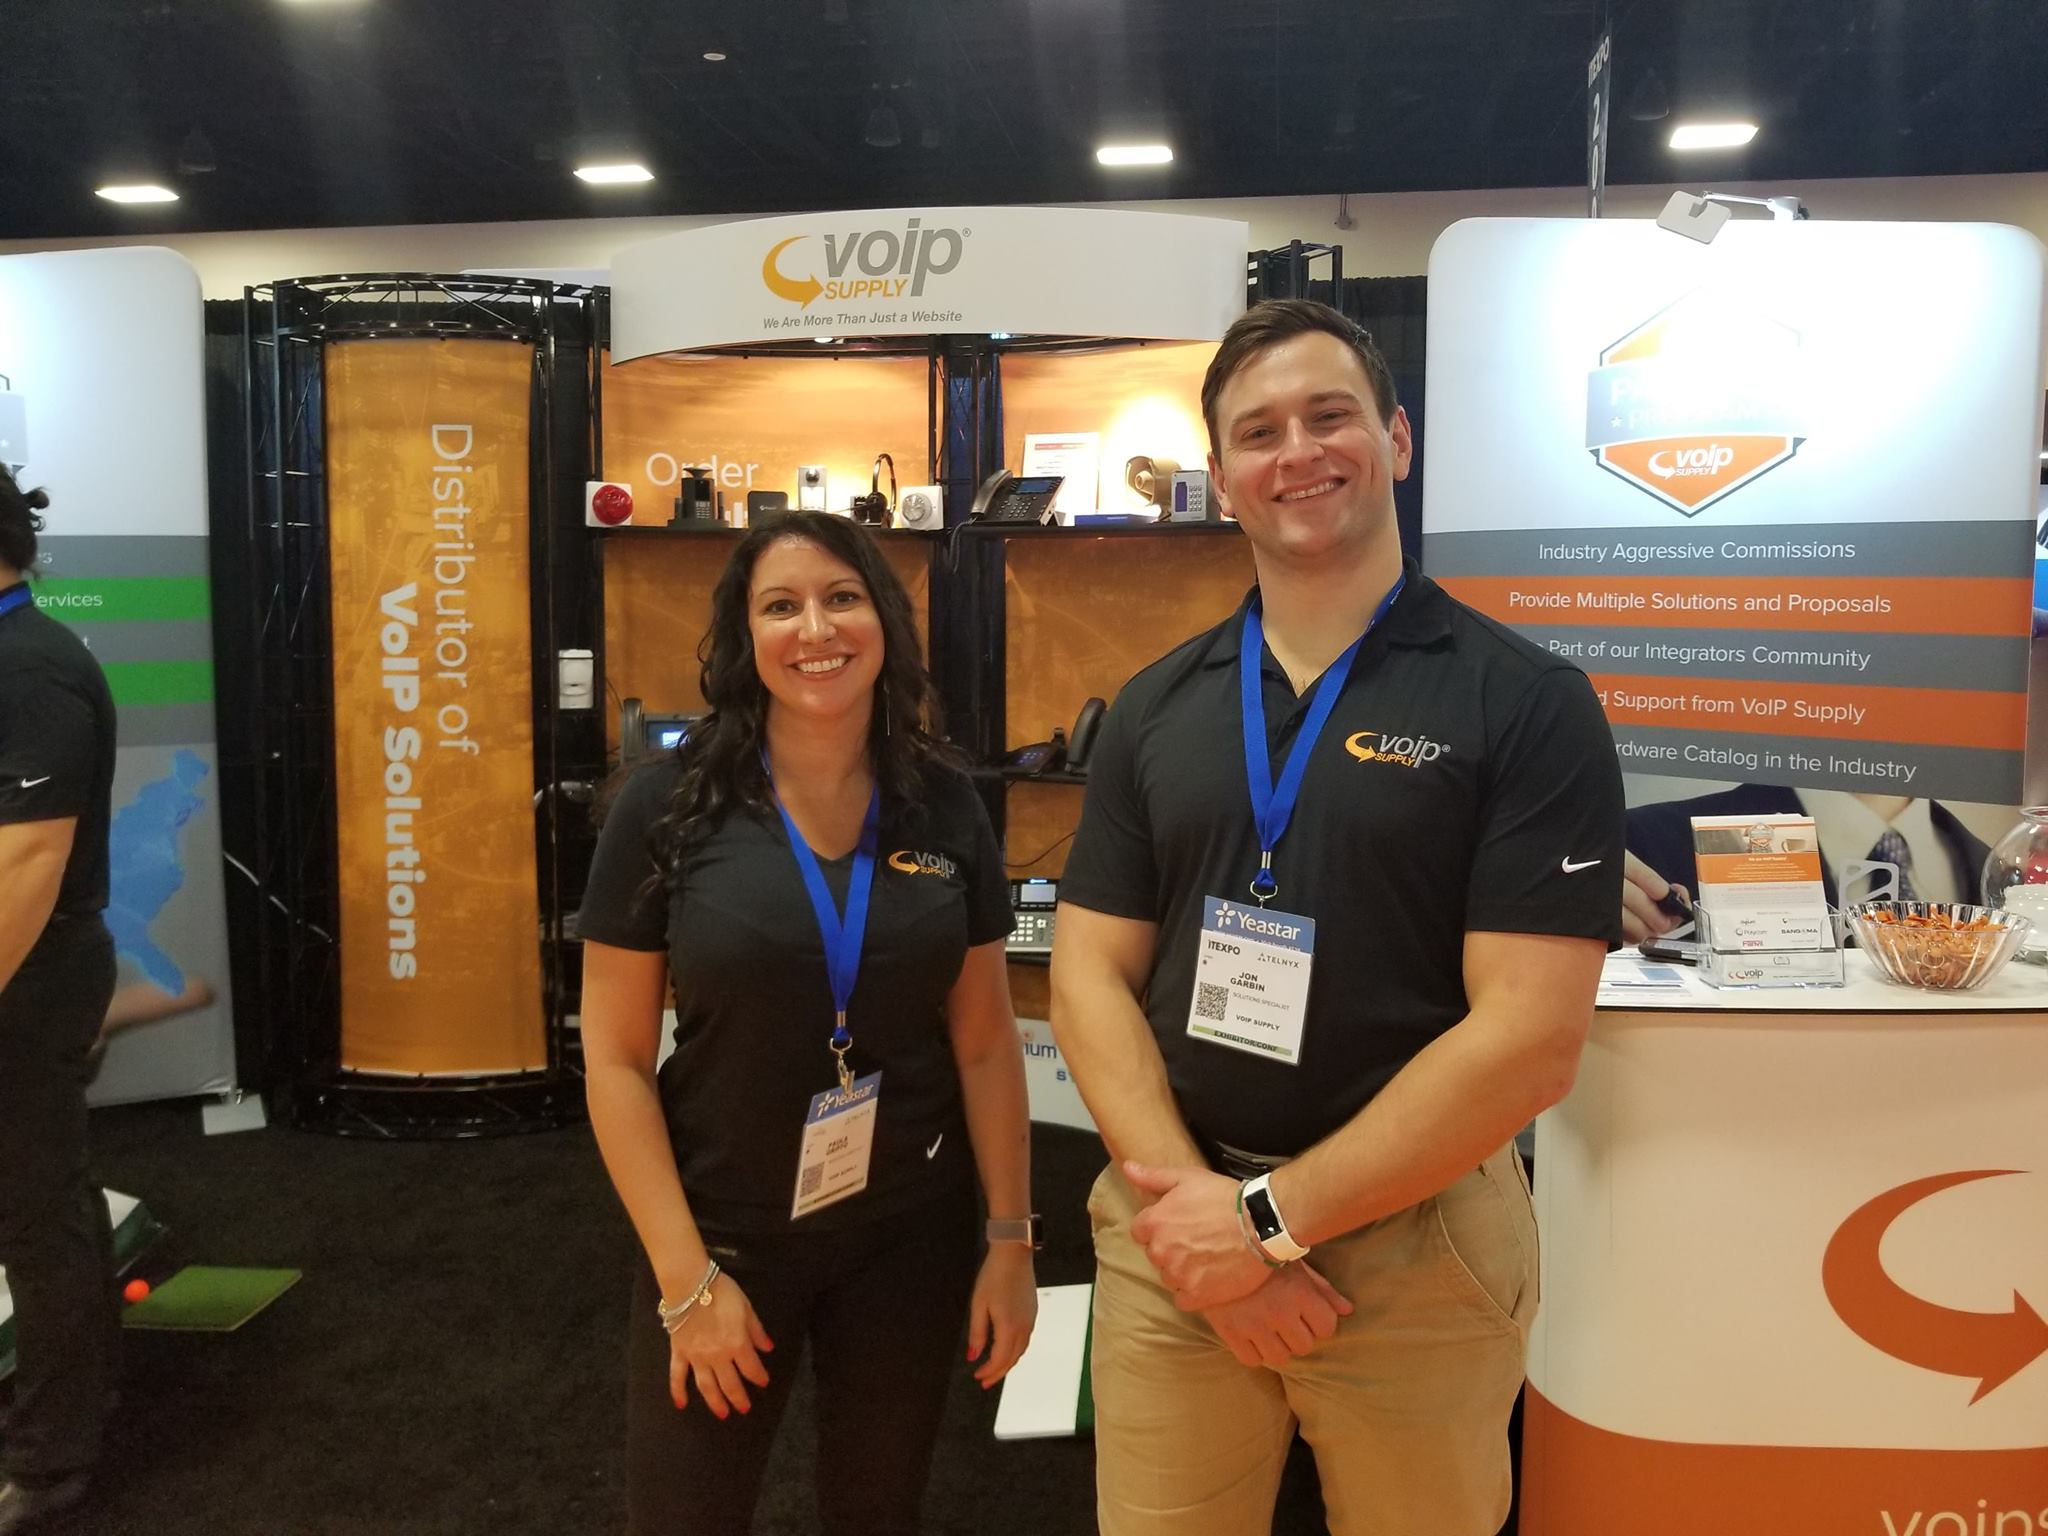 Happy VoIP Supply Sales Reps at a Trade Show